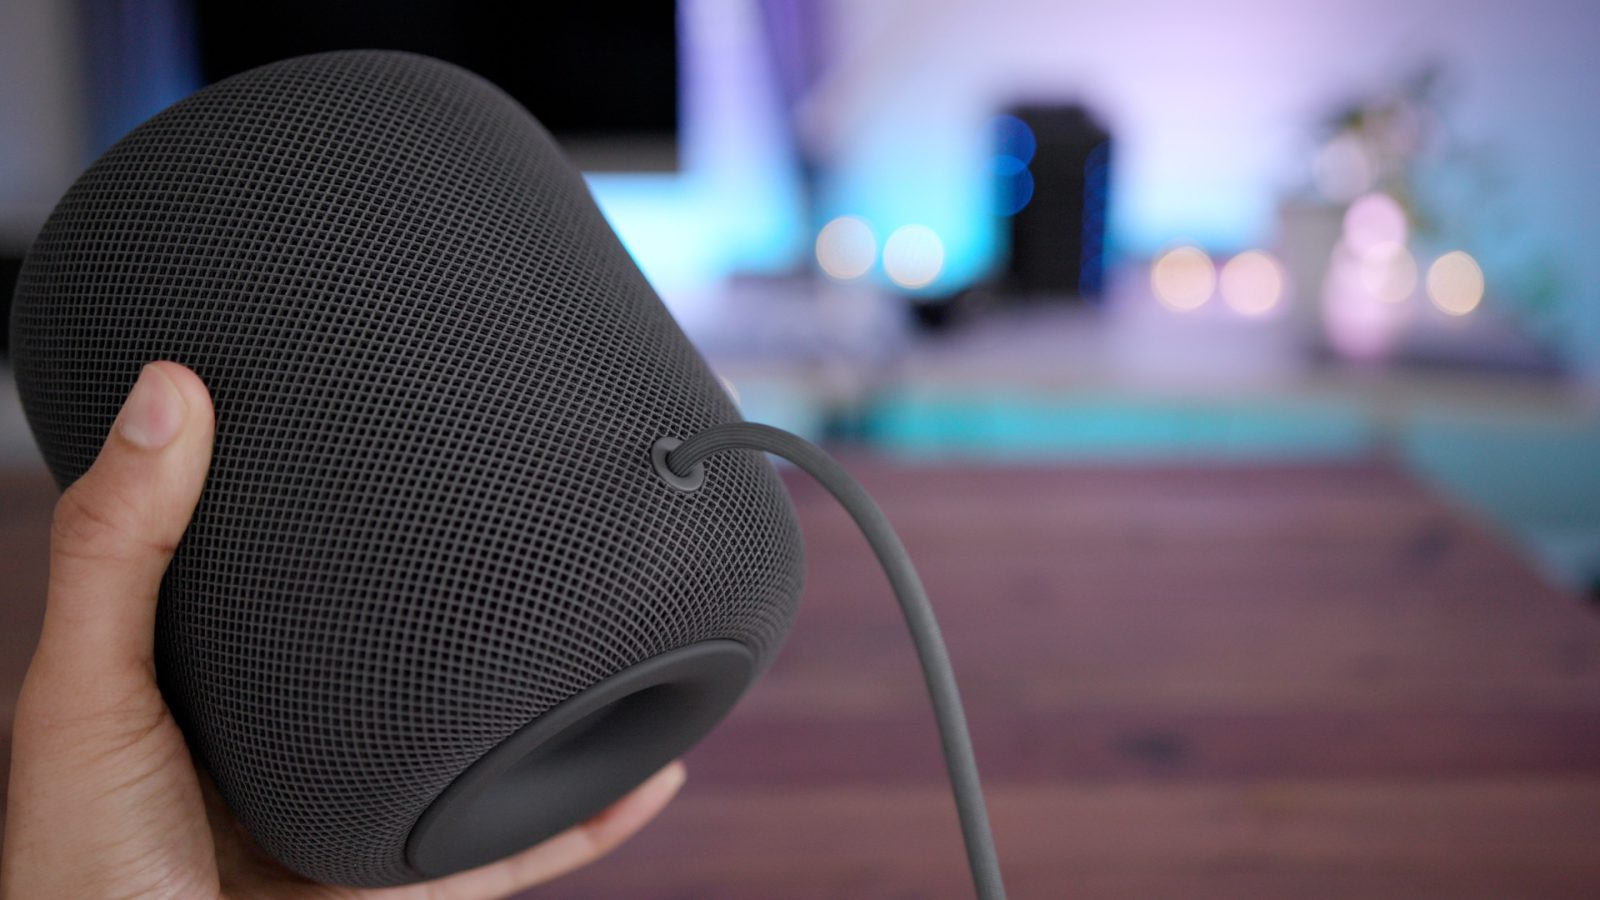 Apple responds to HomePod 'ring' issue, says not unusual for 'vibration-dampening silicone' to leave marks apple-responds-to-homepod-ring-issue-says-not-unusual-for-vibration-dampening-silicone-to-leave-marks